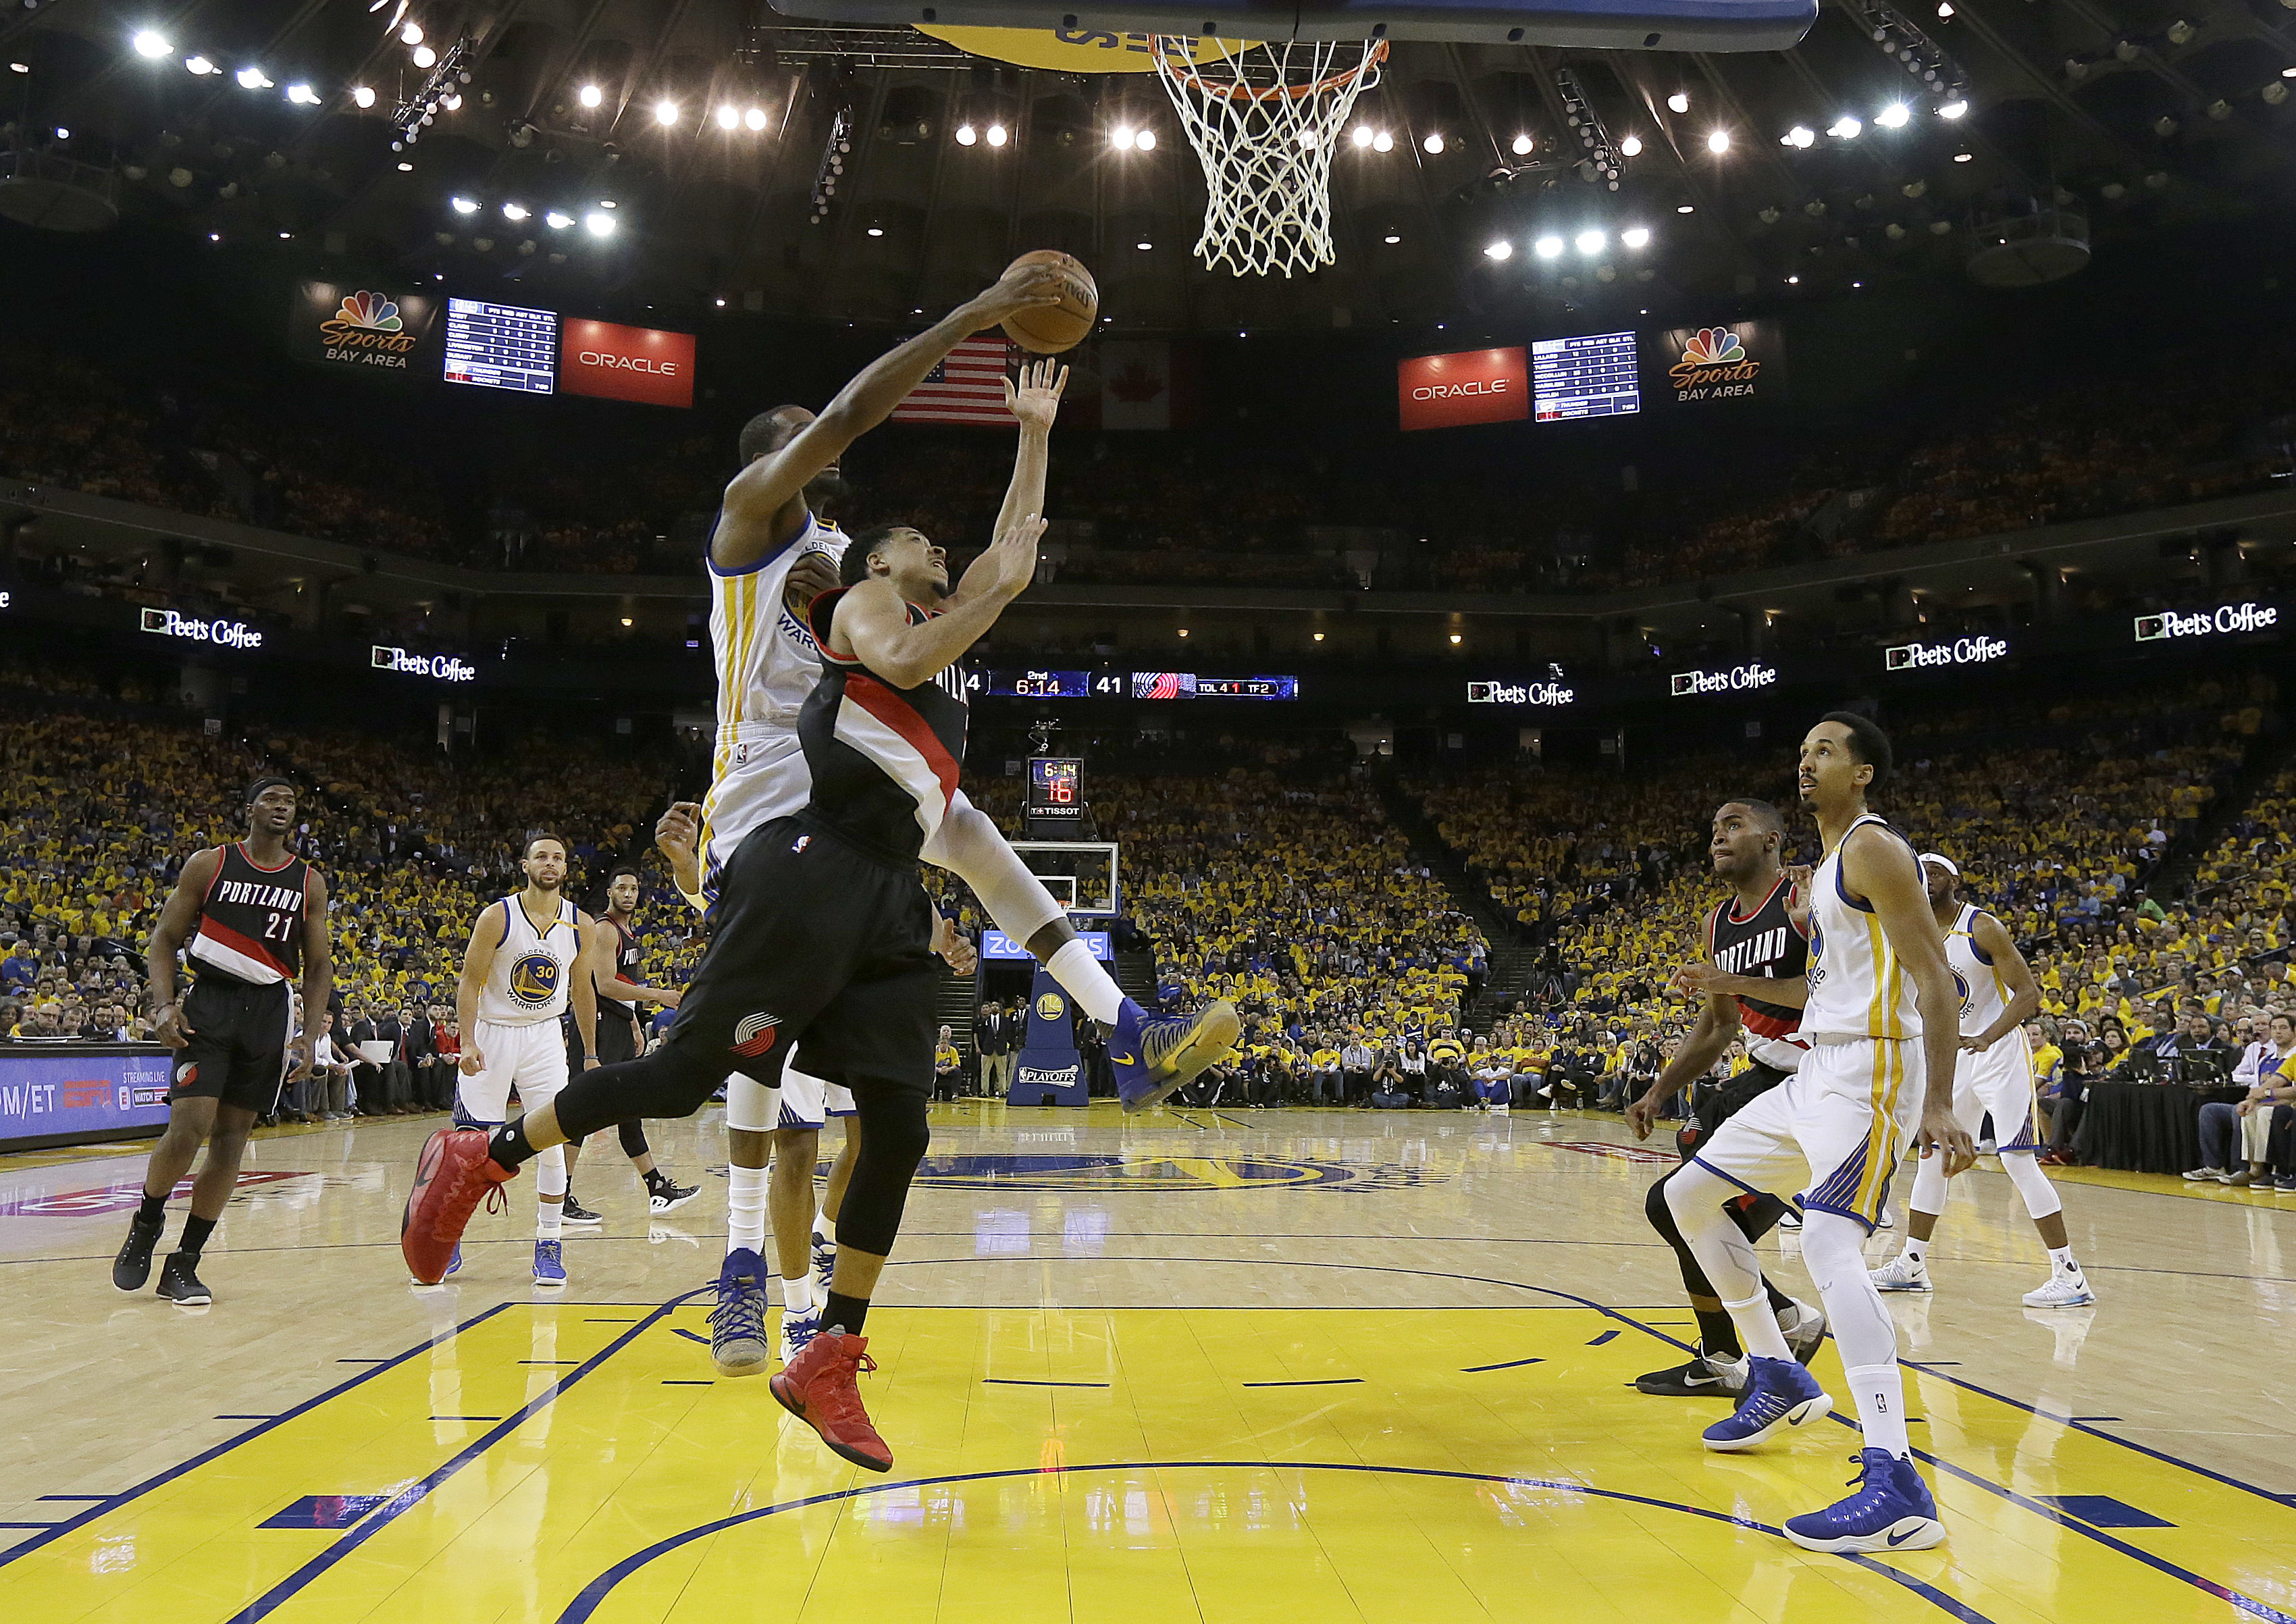 Portland Trail Blazers guard C.J. McCollum, foreground, shoots in front of Golden State Warriors forward Kevin Durant during the first half of Game 1 of a first-round NBA basketball playoff series in Oakland, Calif., Sunday, April 16, 2017. (AP...